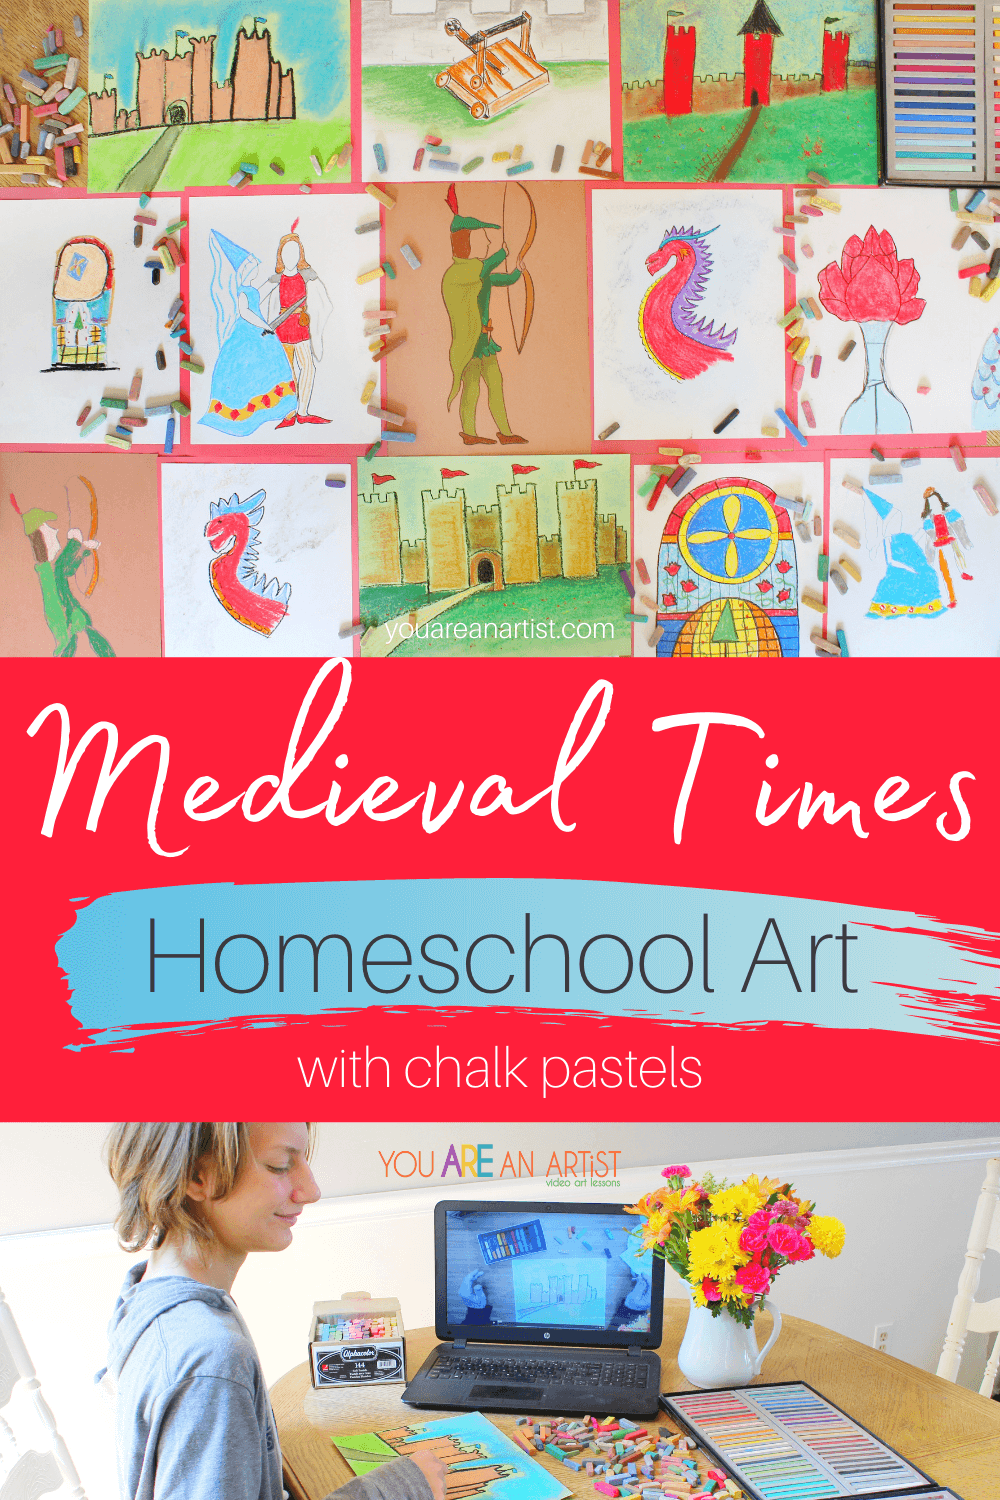 Medieval Times Homeschool Art with Chalk Pastels: Learn about Medieval times with chalk pastel video art lessons! It's the perfect hands-on way to bring a bit of color and excitement to history. #medievalhistory #medievaltimes #medievaltimeshomeschool #medievaltimeshomeschoolart #medievalunitstudy #homeschoolart #chalkpastels #YouAREAnArtist